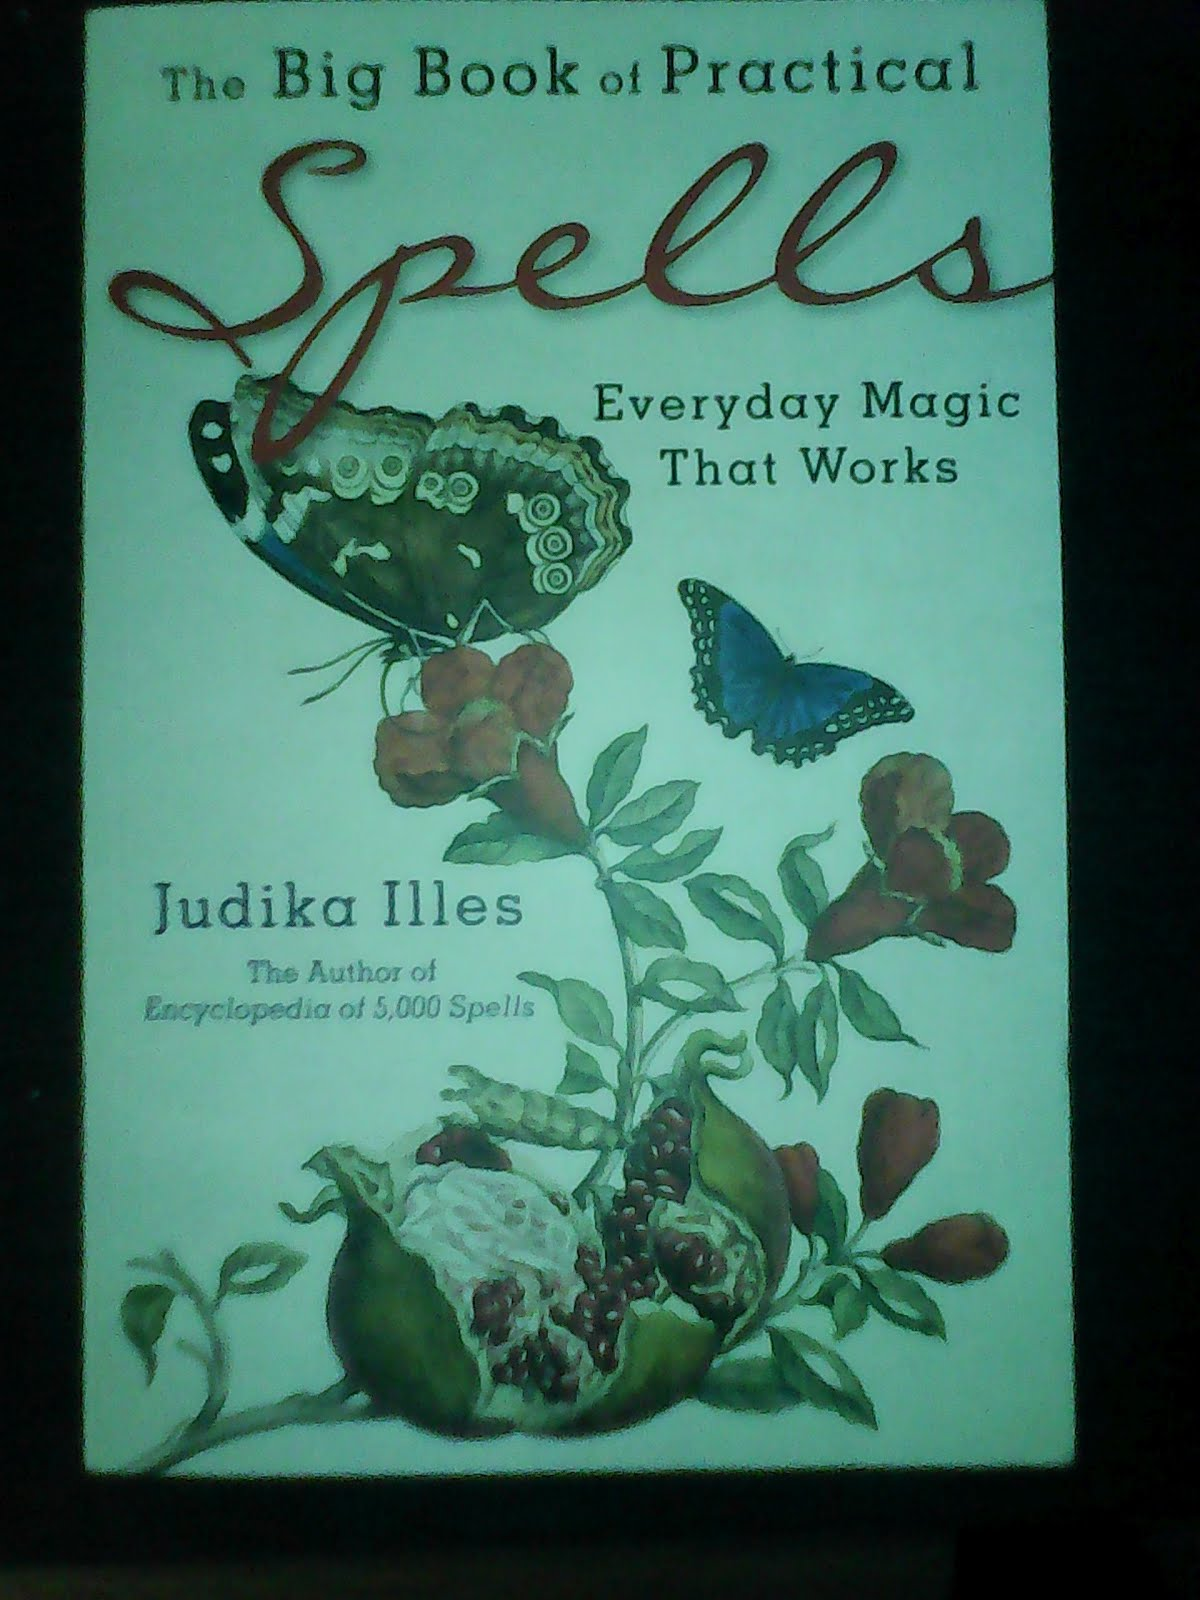 The Big Book of Practical Spells by Judika Illes.